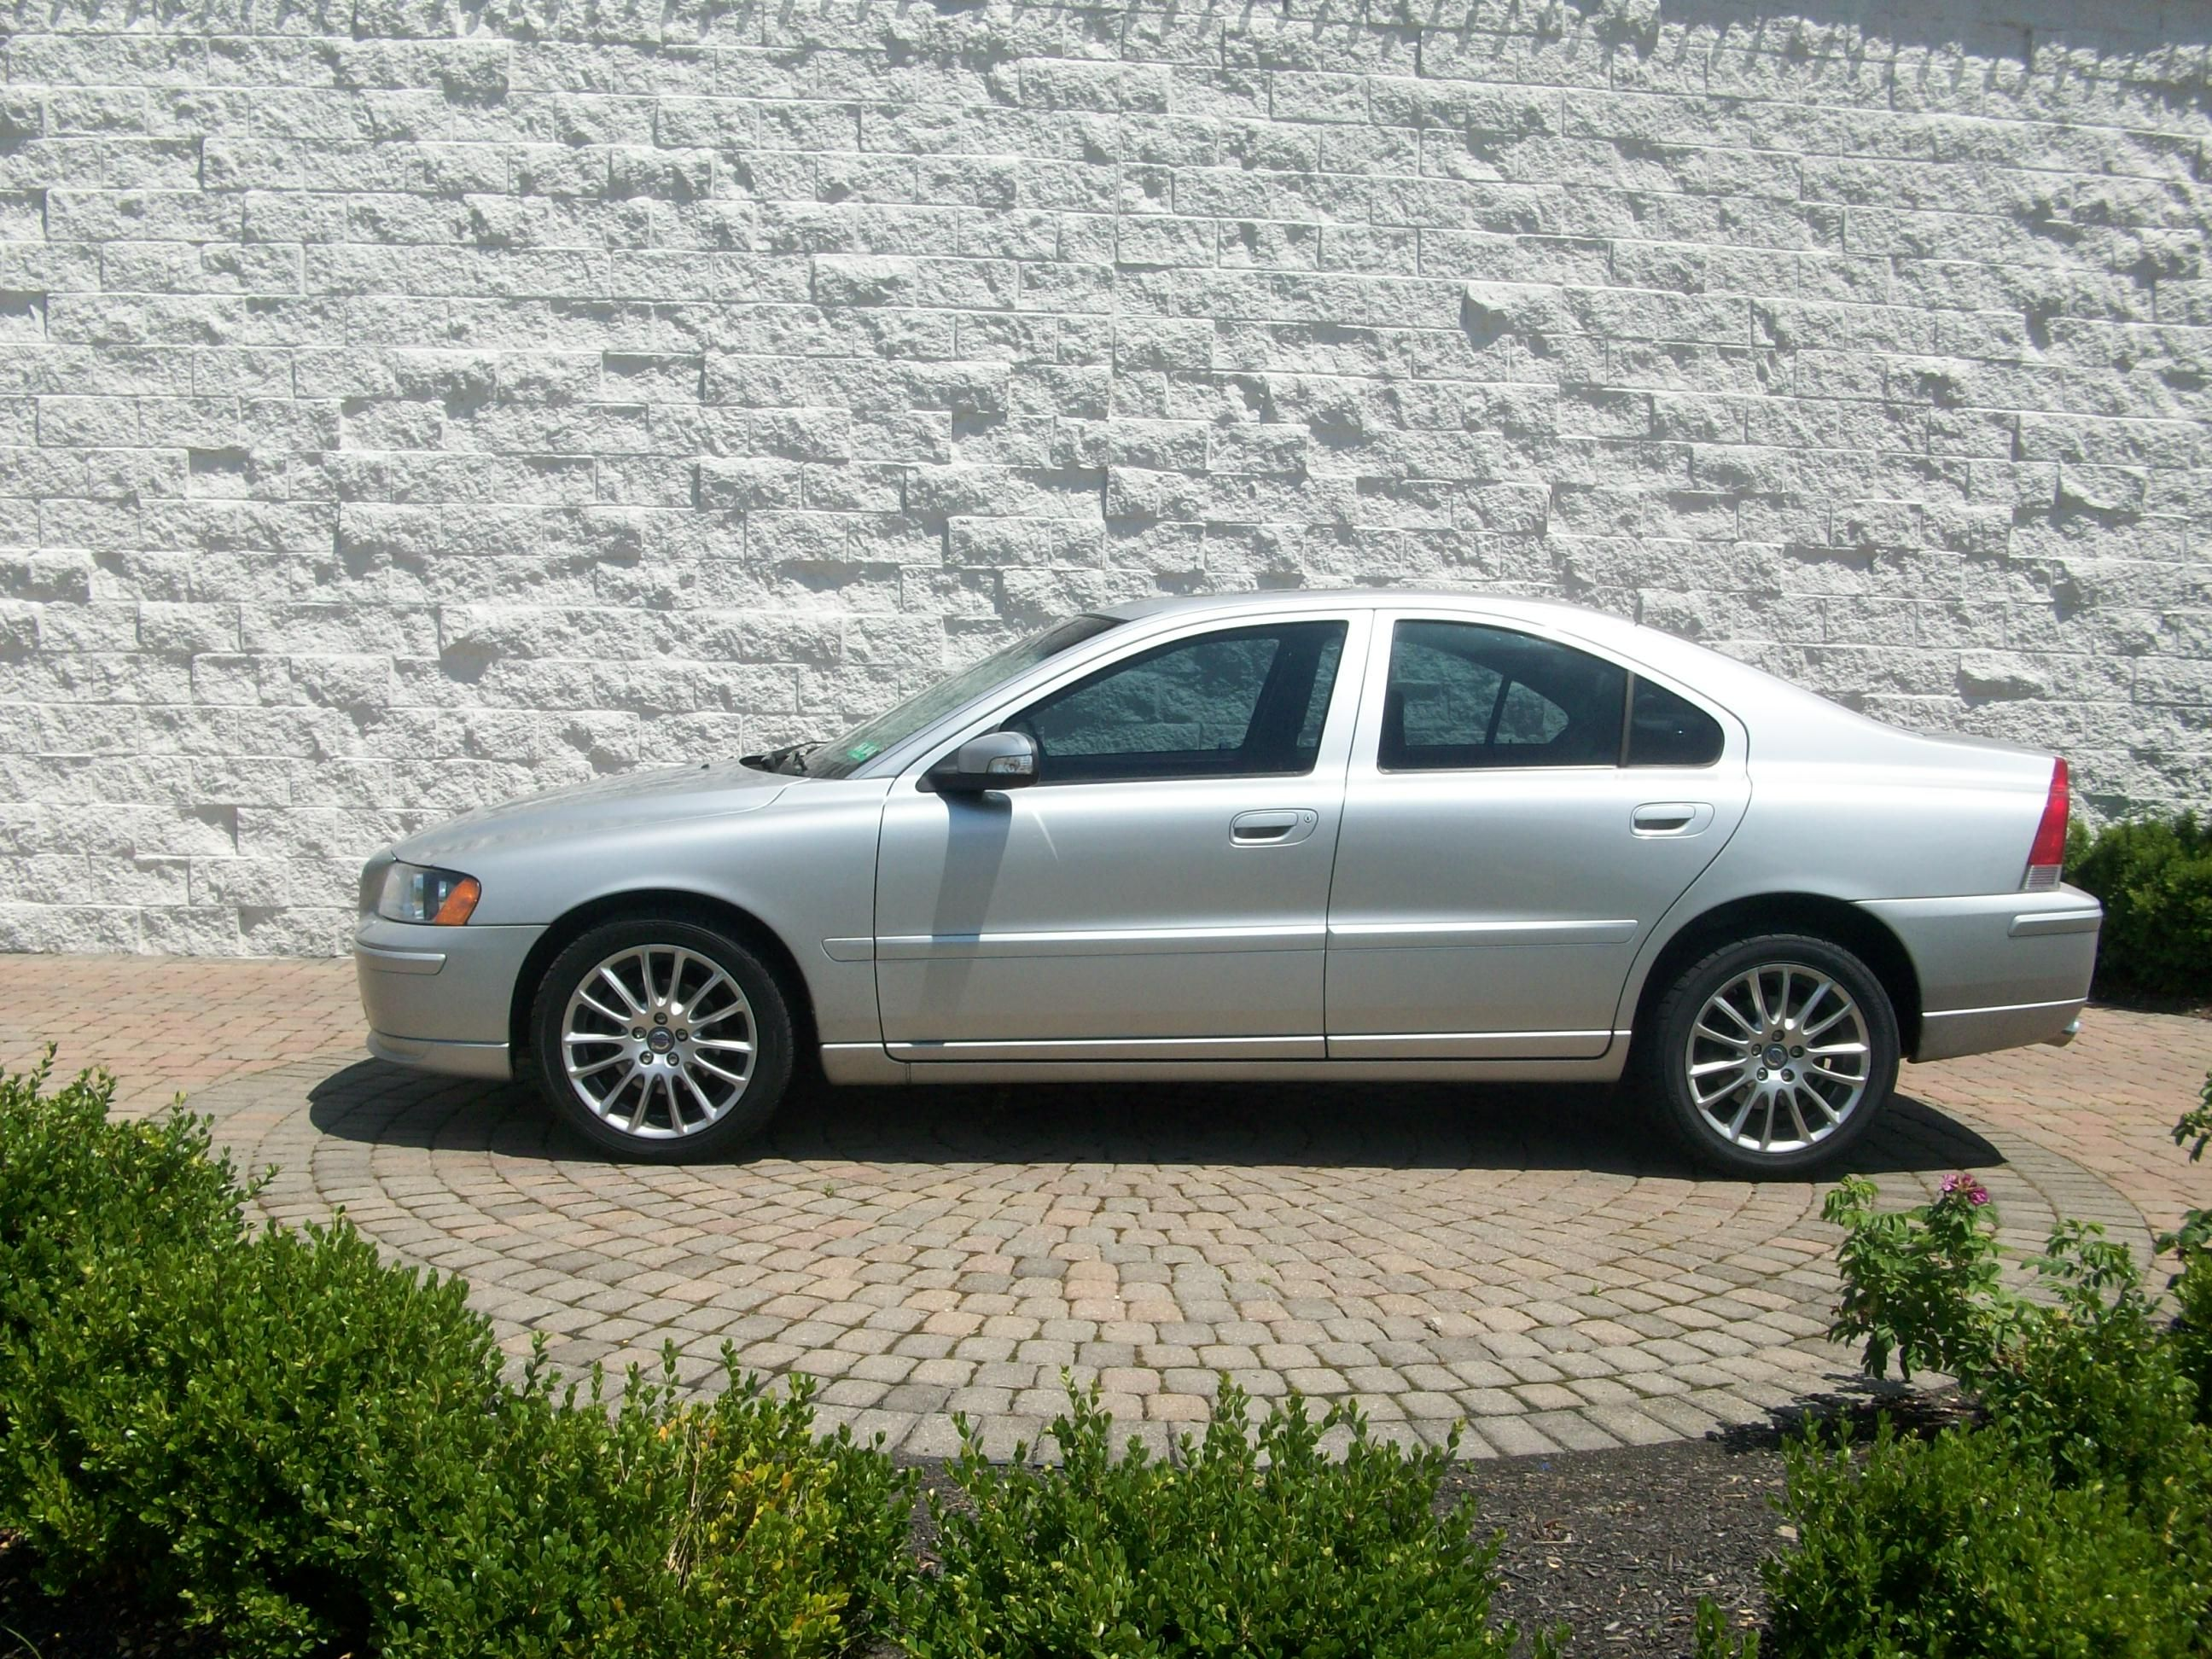 2008 Volvo S60 14 990 Bodystyle 4 Door Sedan Engine 2 5l I 5 Cyl Transmission Automatic Ext Color Silver Int Color Bla Volvo S60 Volvo Volvo Cars